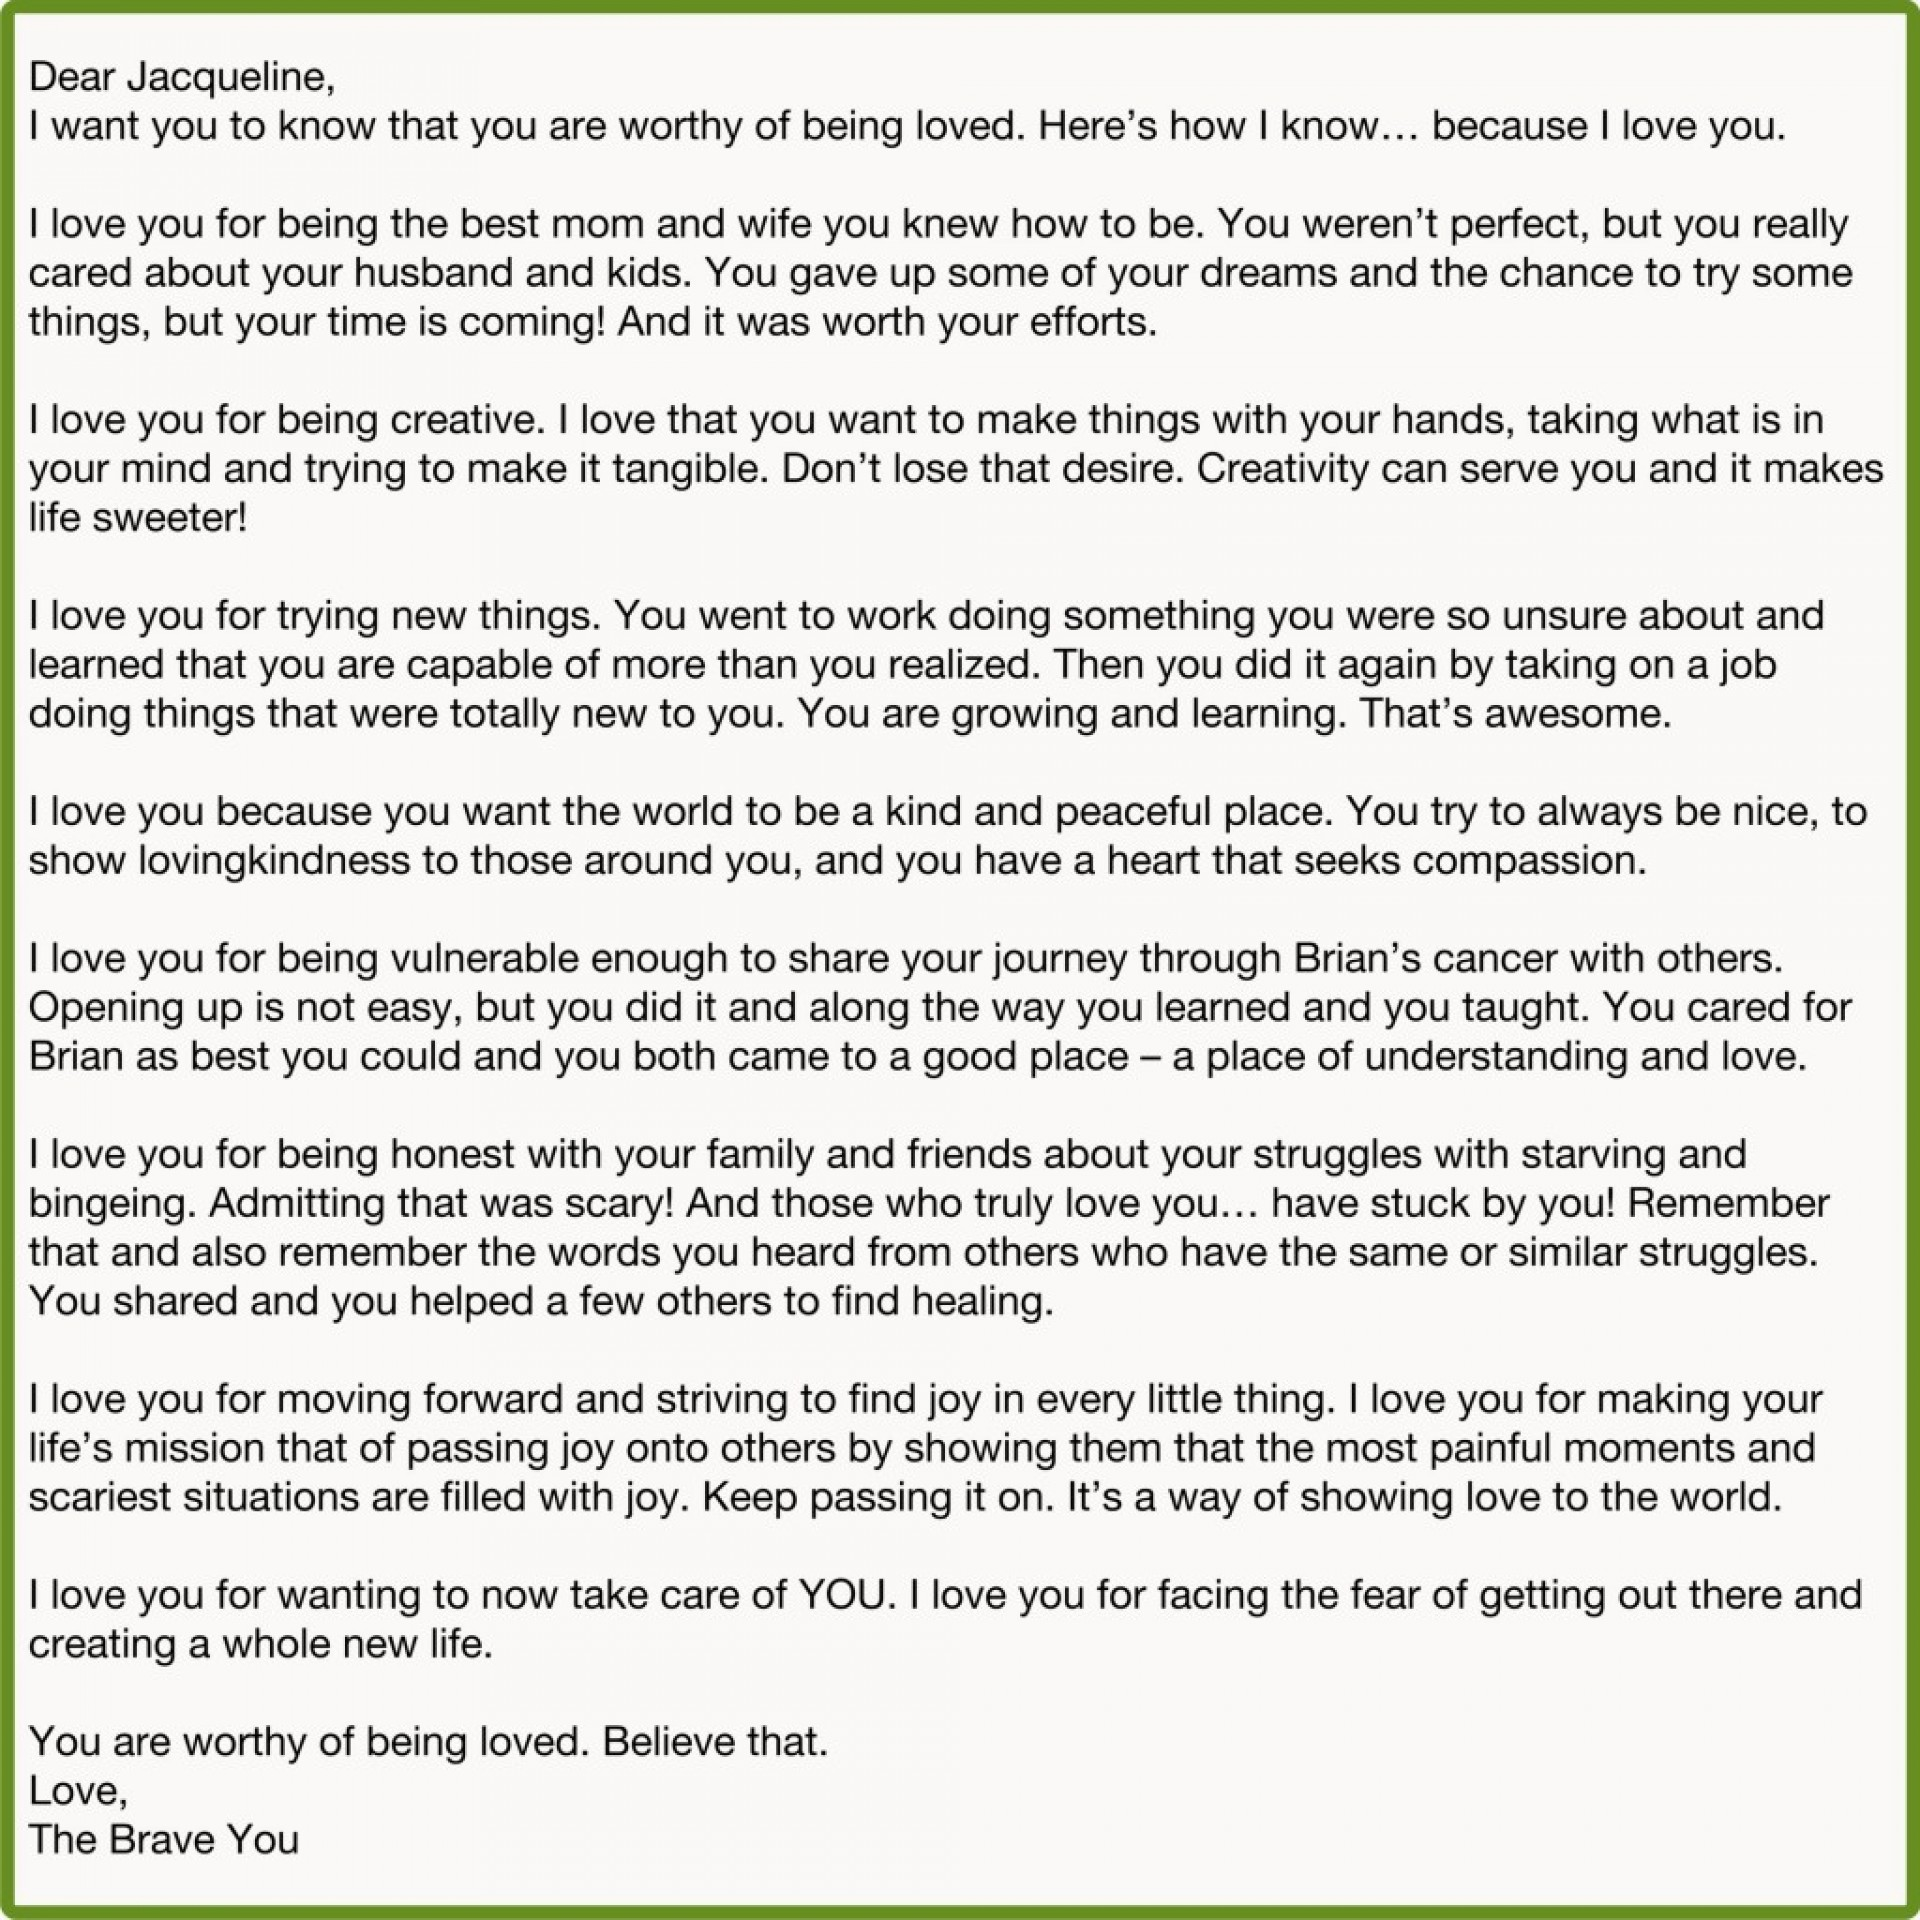 020 Essay Example Dear J1 1024x1024 Sharing And Formidable Caring Is For Grade 3 Class 2 1920